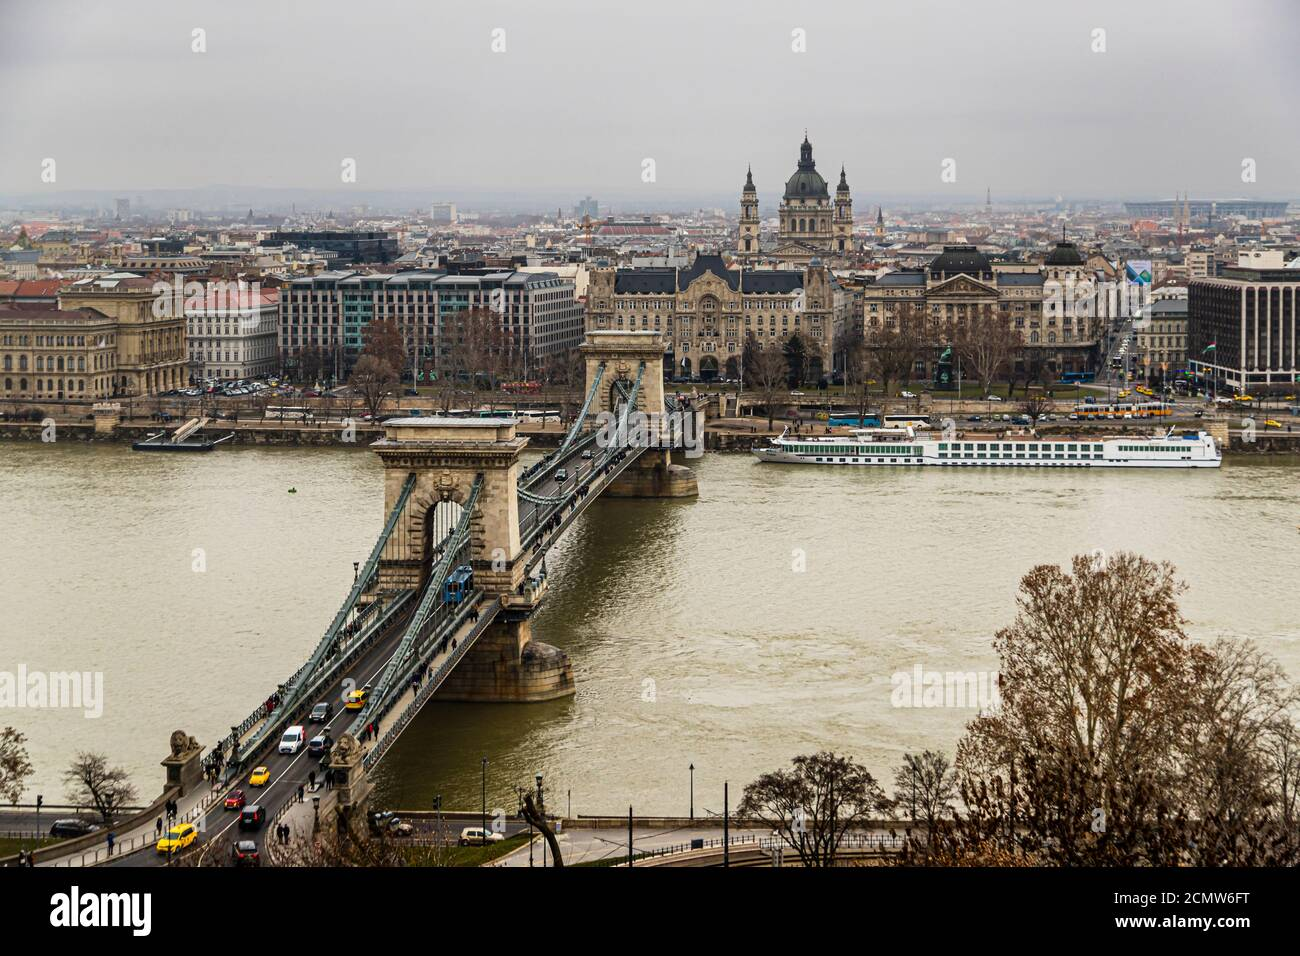 View over the Danube at the Chain Bridge in Budapest, Hungary Stock Photo